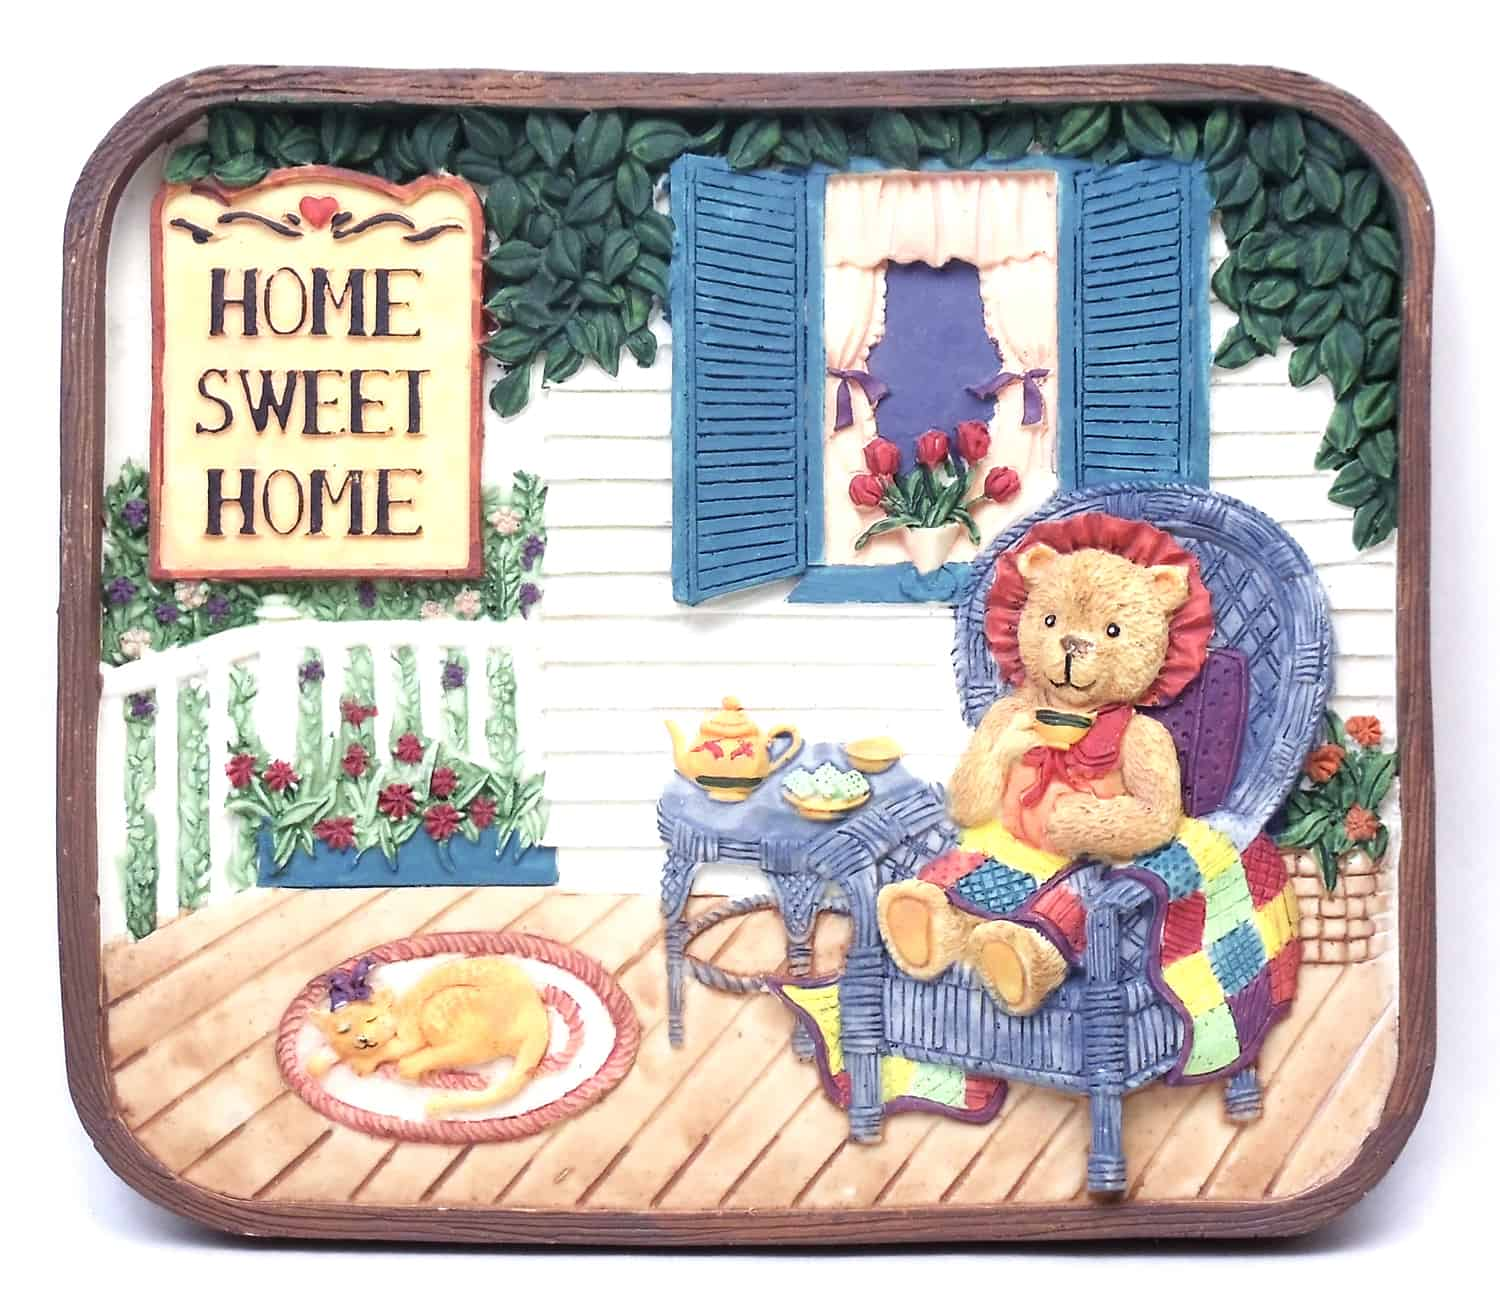 1253814C - Home Sweet Home Wall Plaque - Bear On Porch At Tea Time